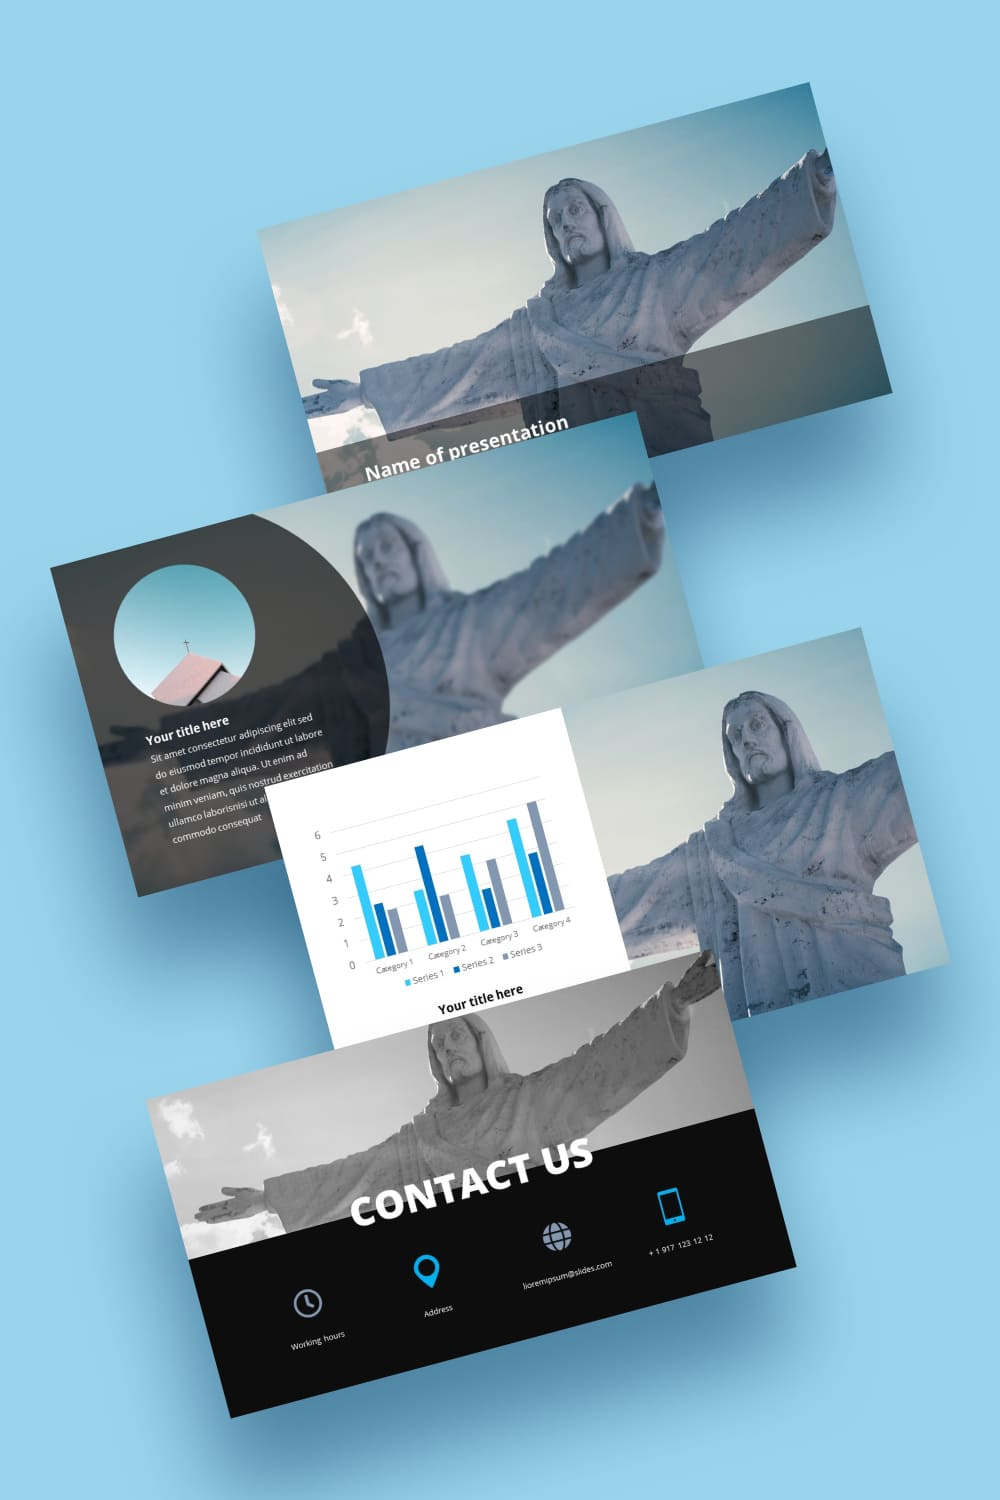 This template is similar to the statue of Christ the Redeemer in Rio. She is free and majestic. With this template, your presentation will take on new colors and meaning.